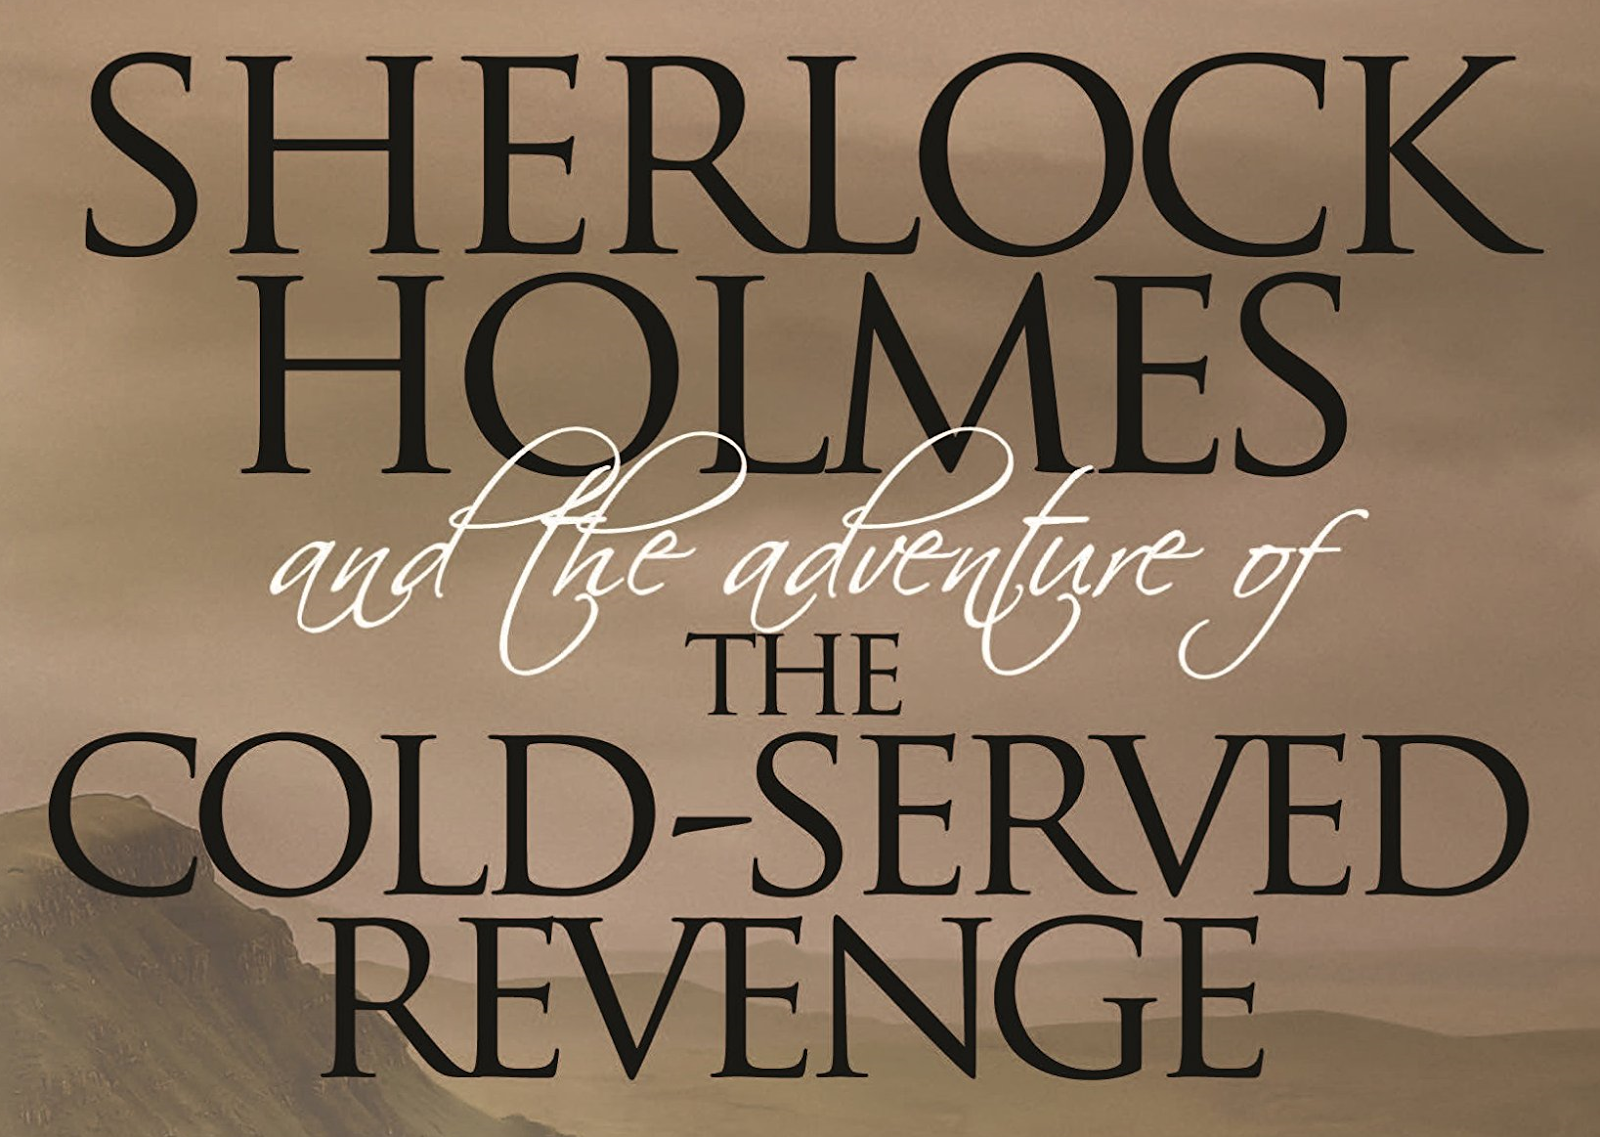 Even Sherlock Holmes agrees that revenge is best-served cold